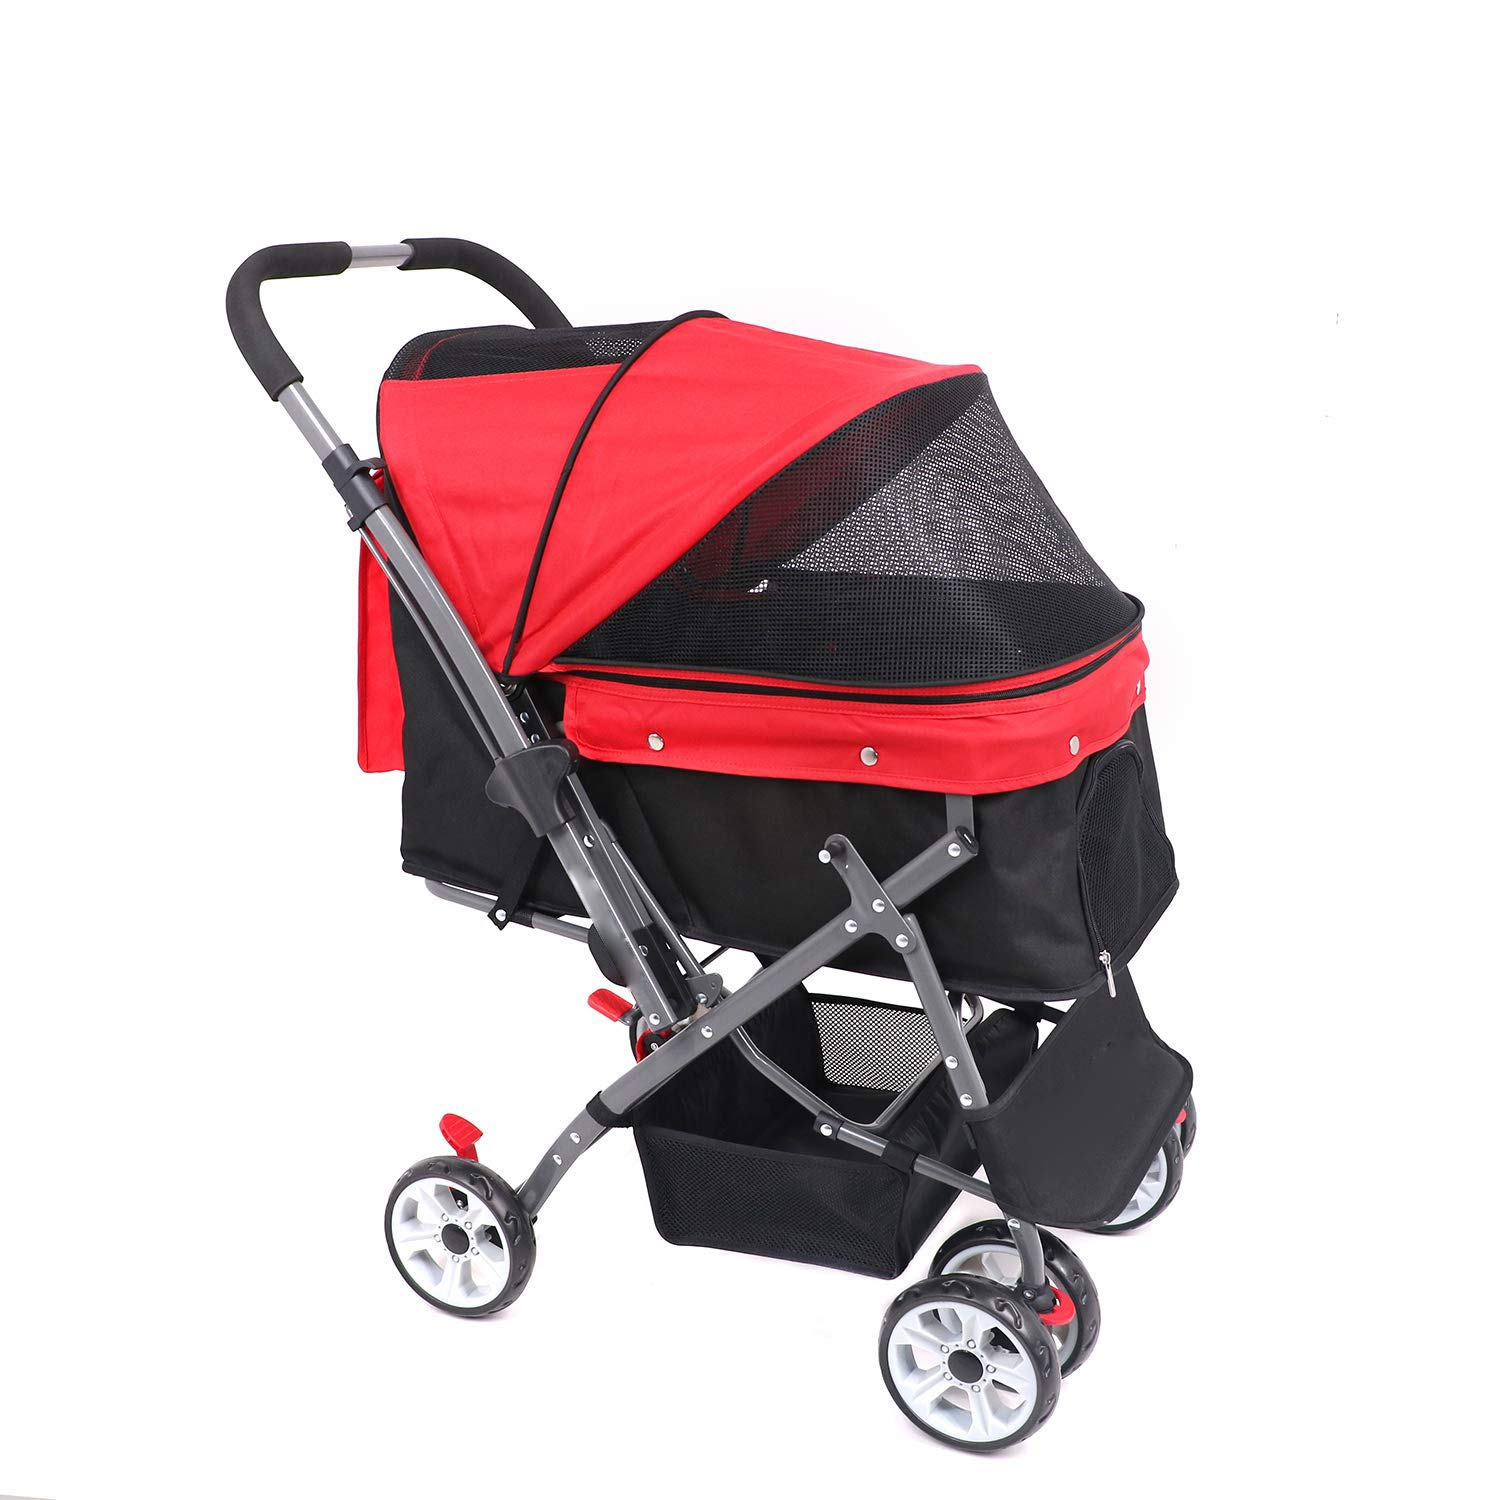 1 Dog Cat Pet Stroller, 4 Wheel Dog Cage Stroller, Reversible Handle Bar,Travel Folding Carrier,Strong and Stable,for Small, Medium, Large Pets